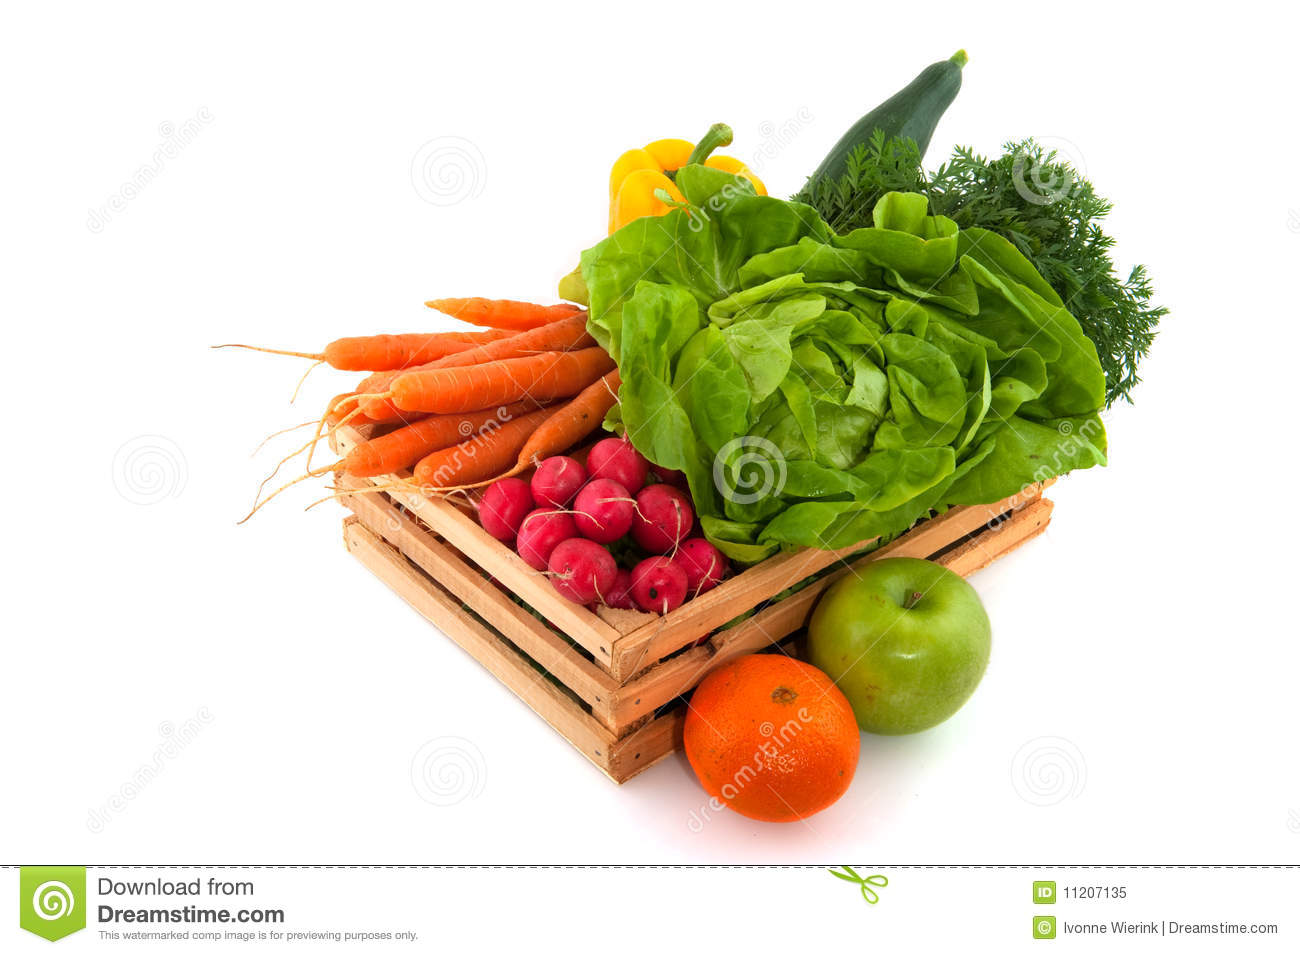 Wooden crate with vegetables and fruit